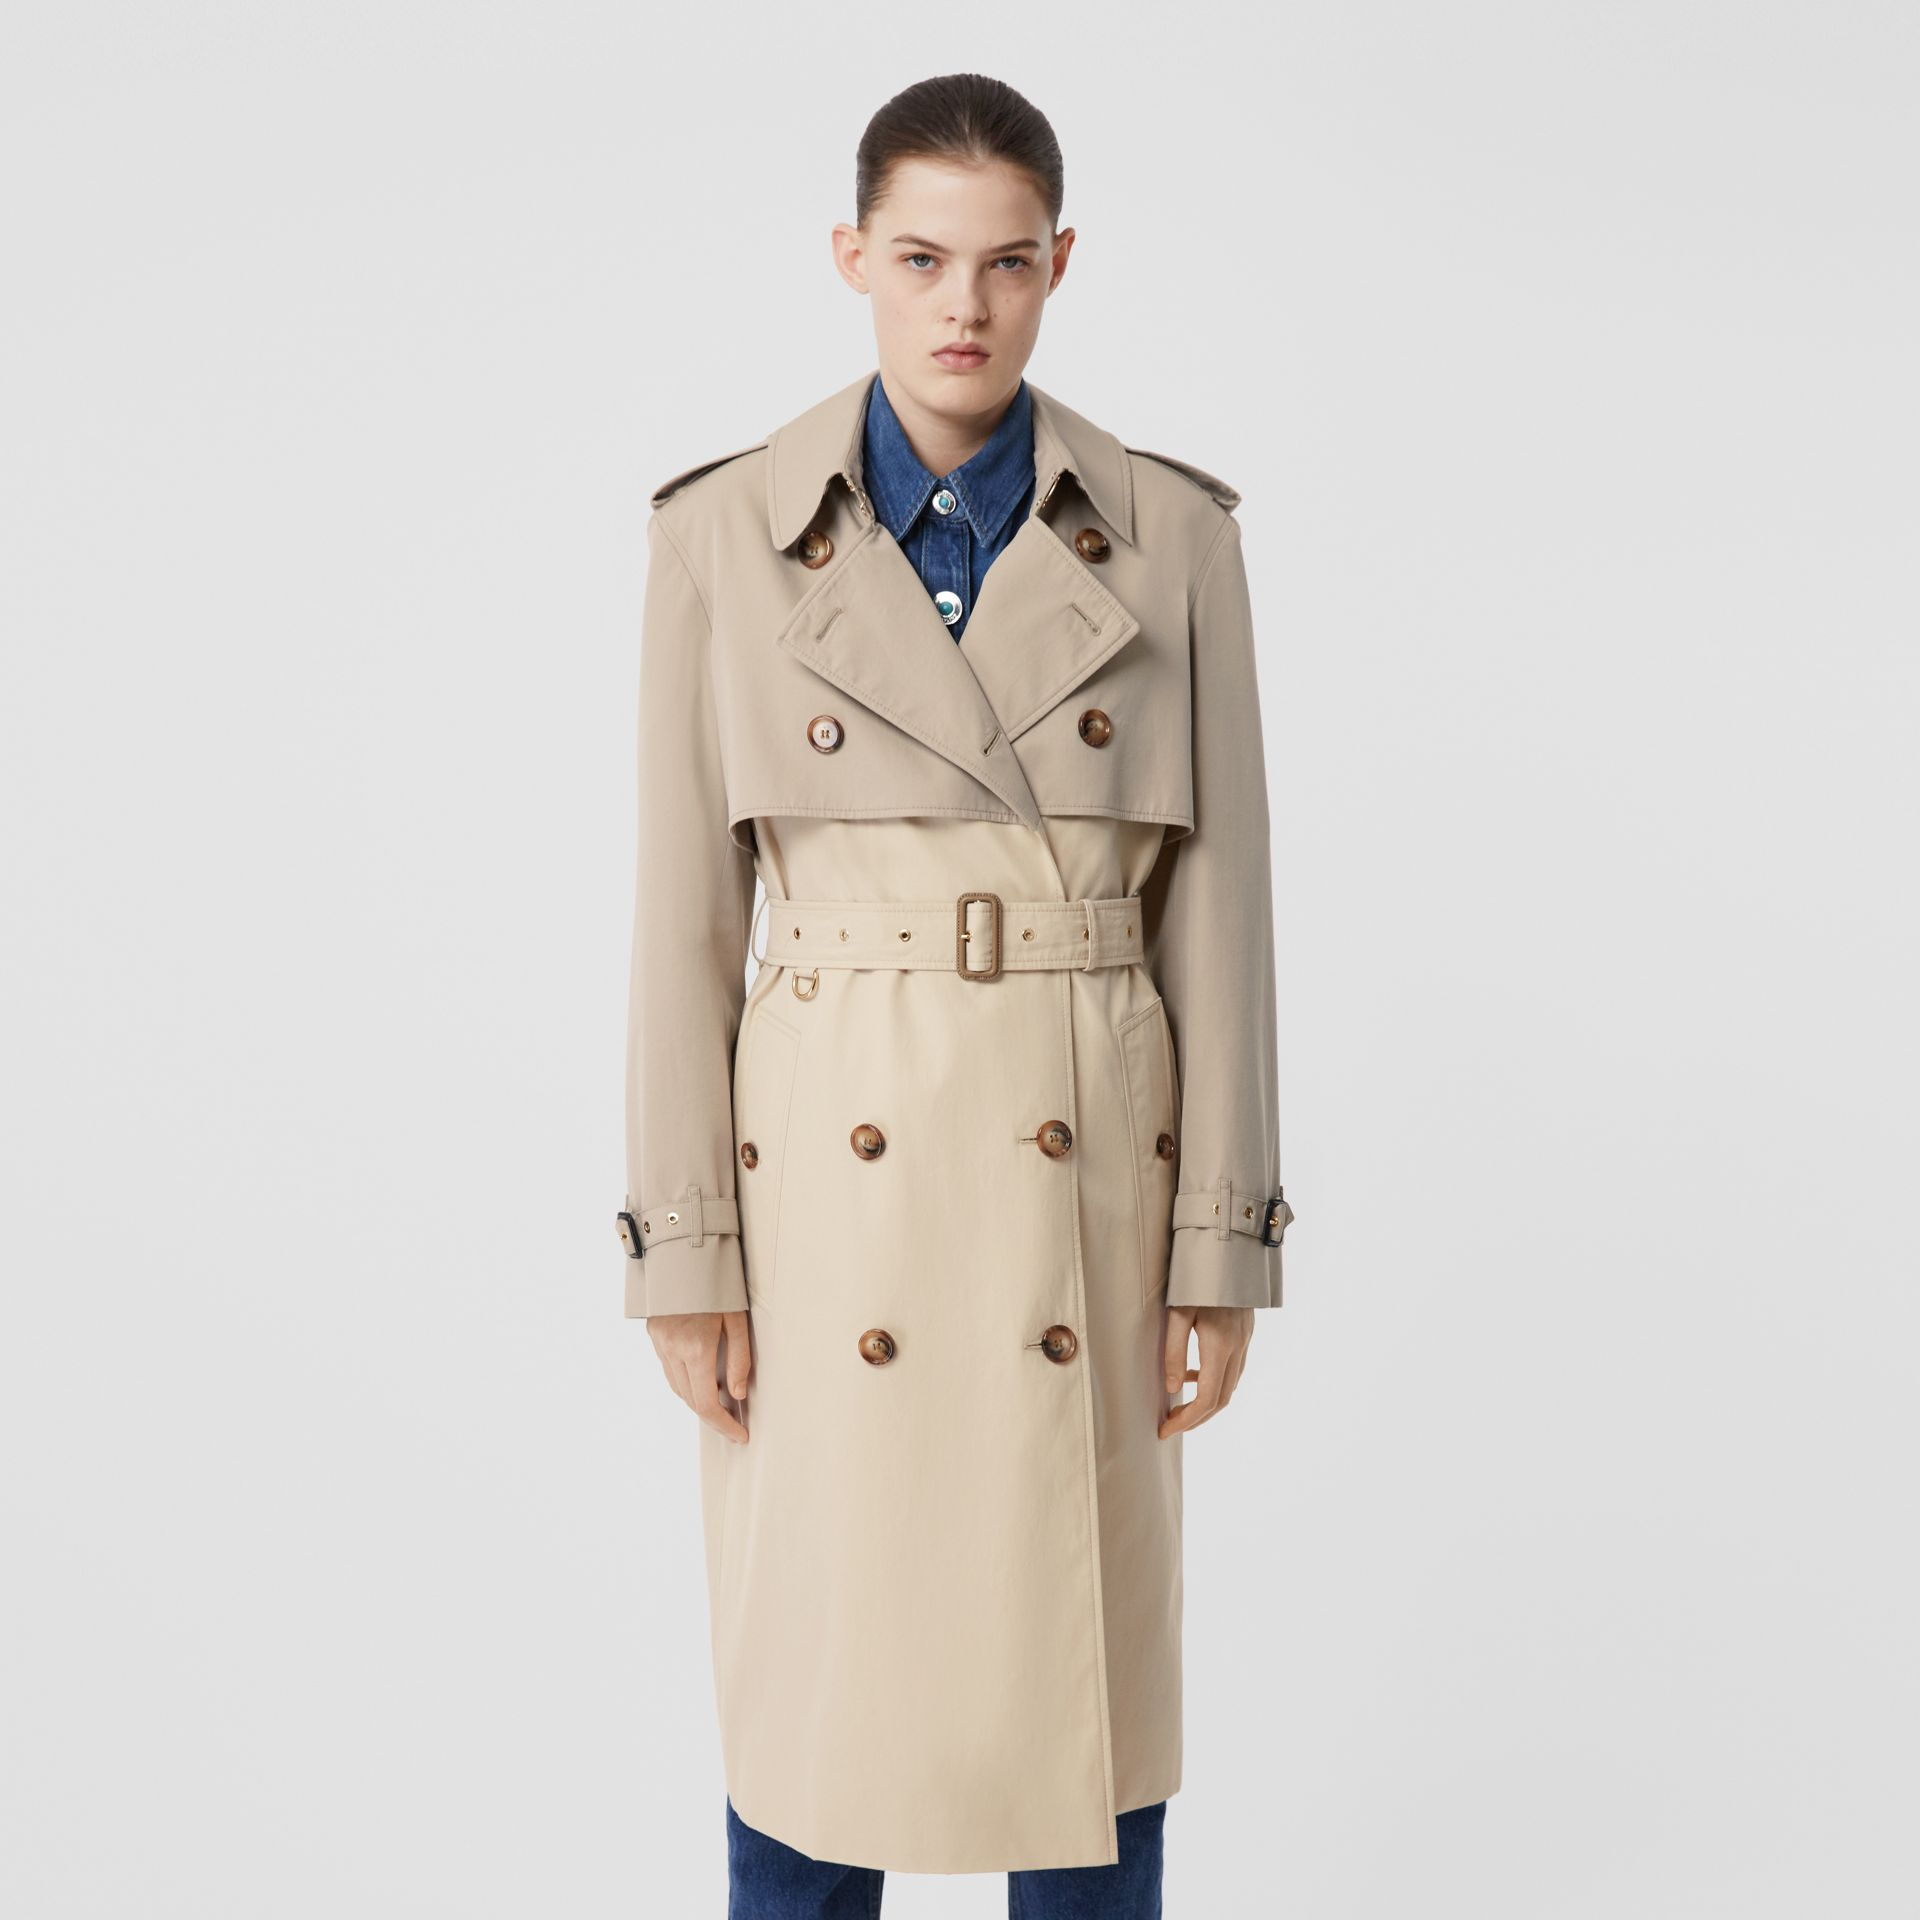 Two-tone Reconstructed Trench Coat in Light Sand - Women | Burberry United Kingdom - gallery image 6